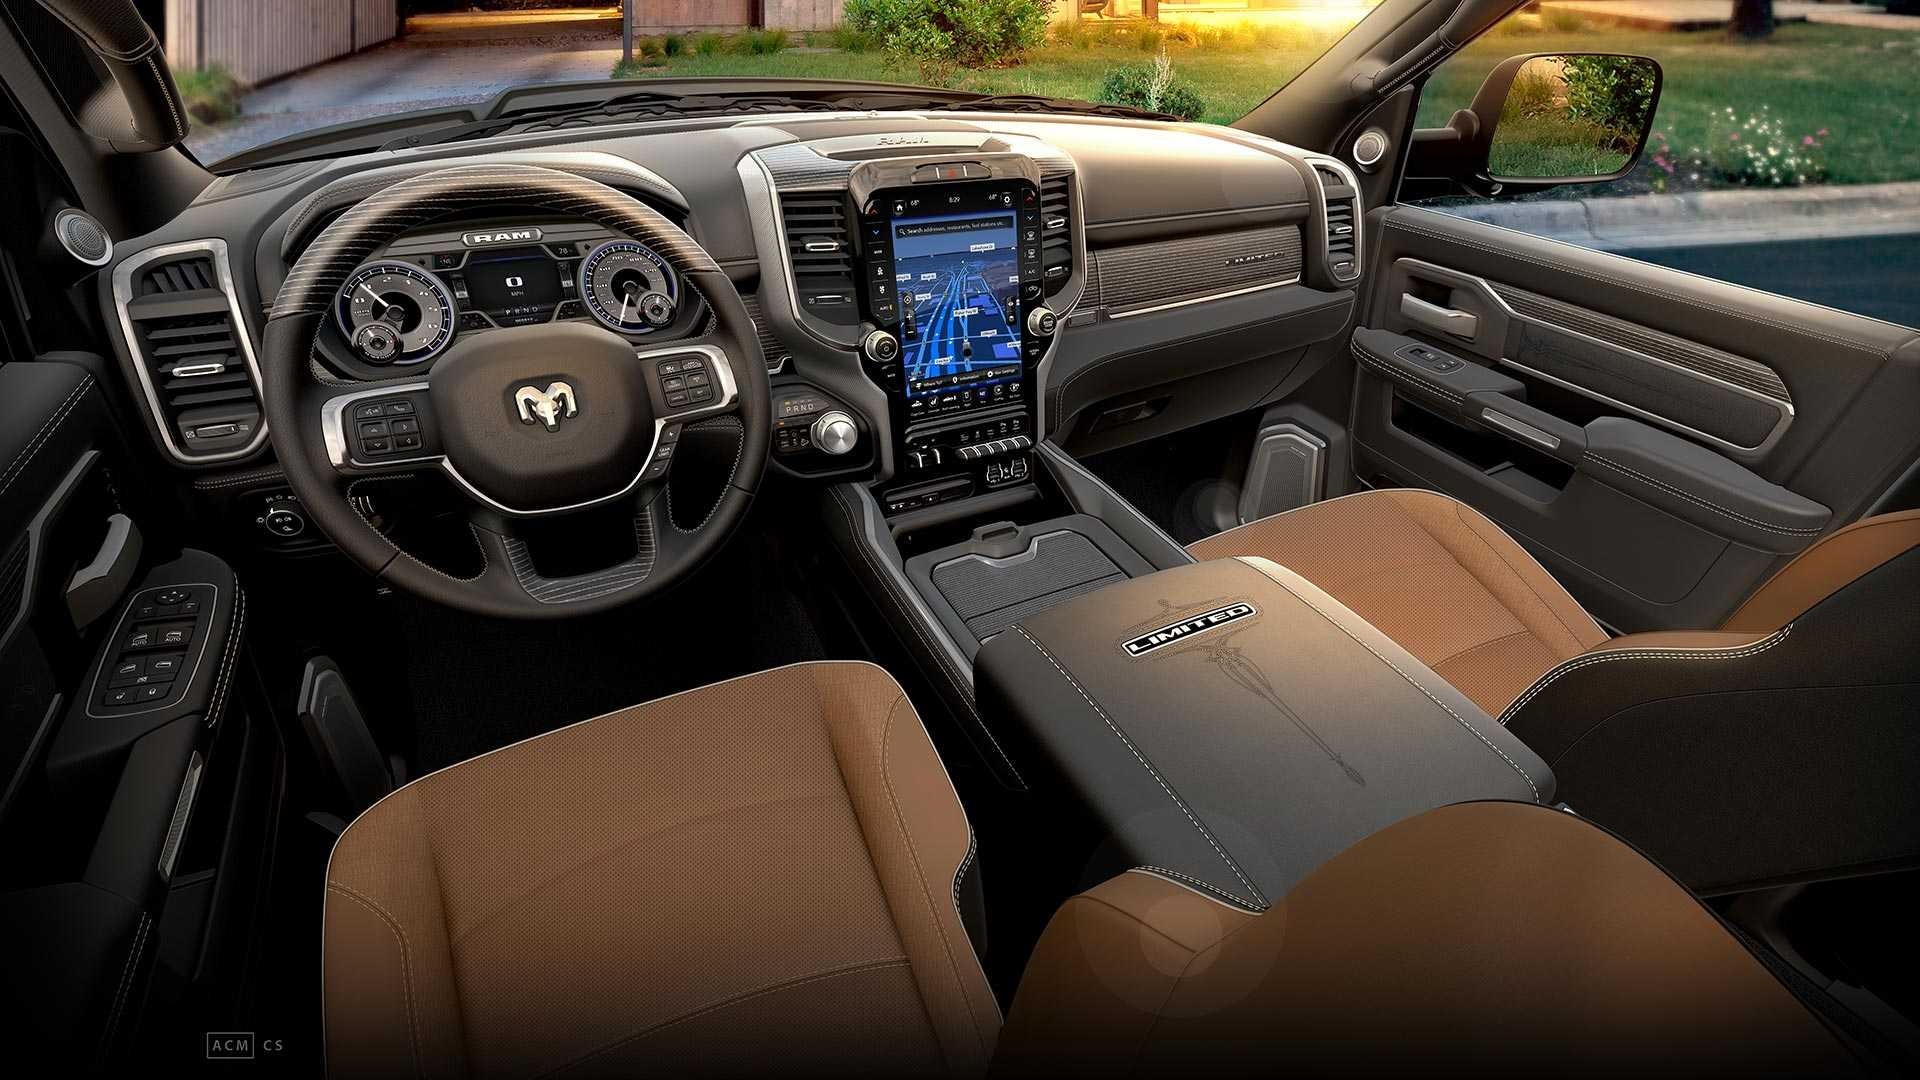 2019 Ram Hd Now Available As Kentucky Derby Edition